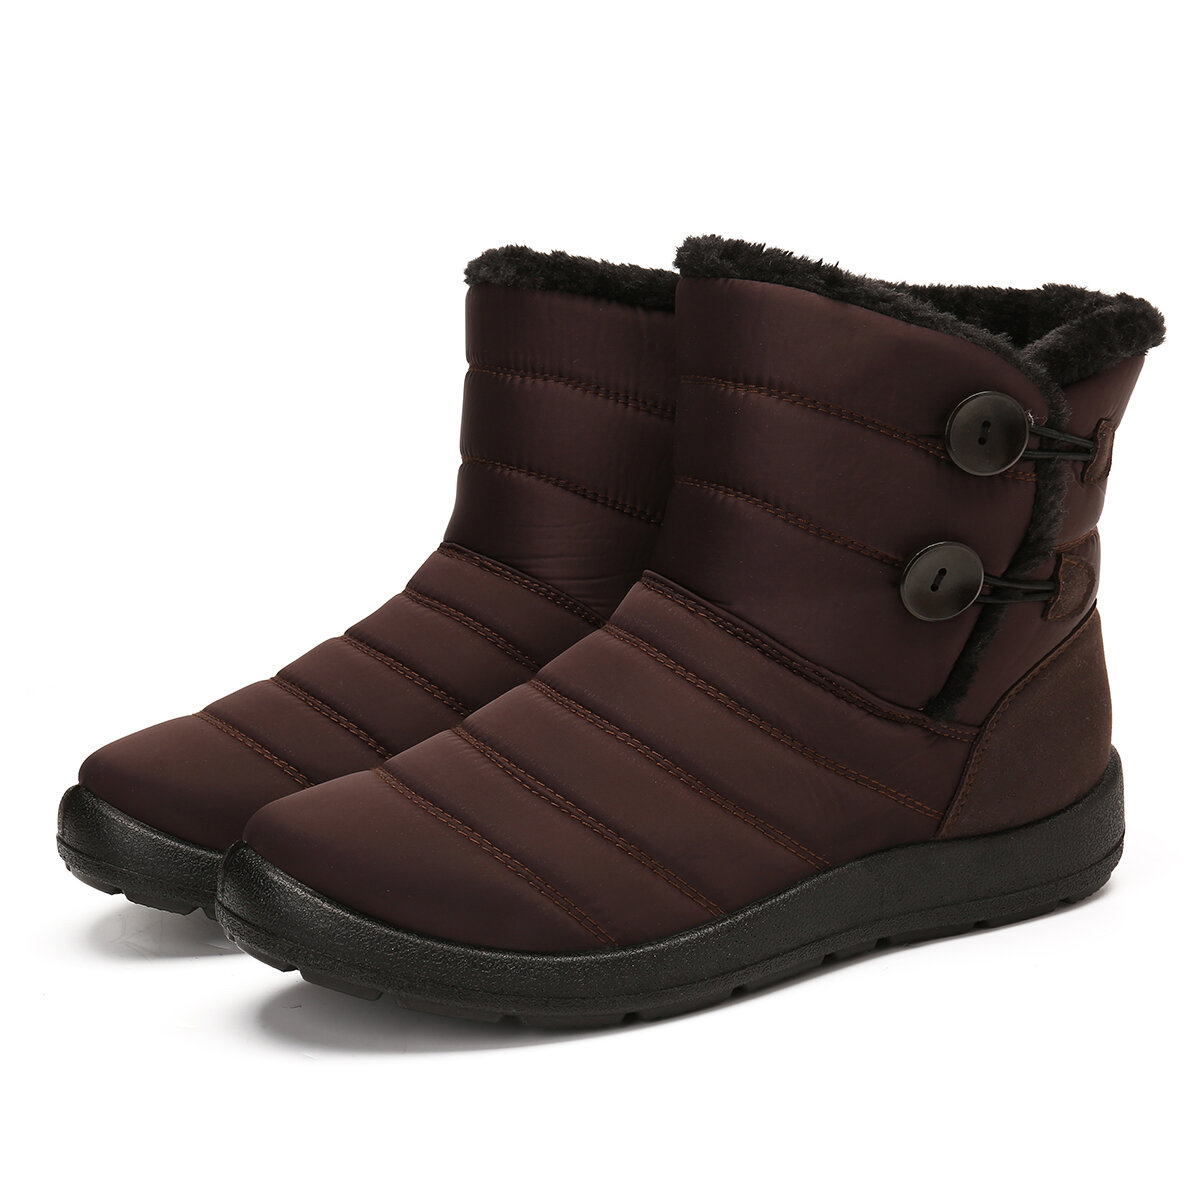 Designer ZJL476950 Buckle Cold Resistant Warm Fur Lining Snow Ankle Boots For Women